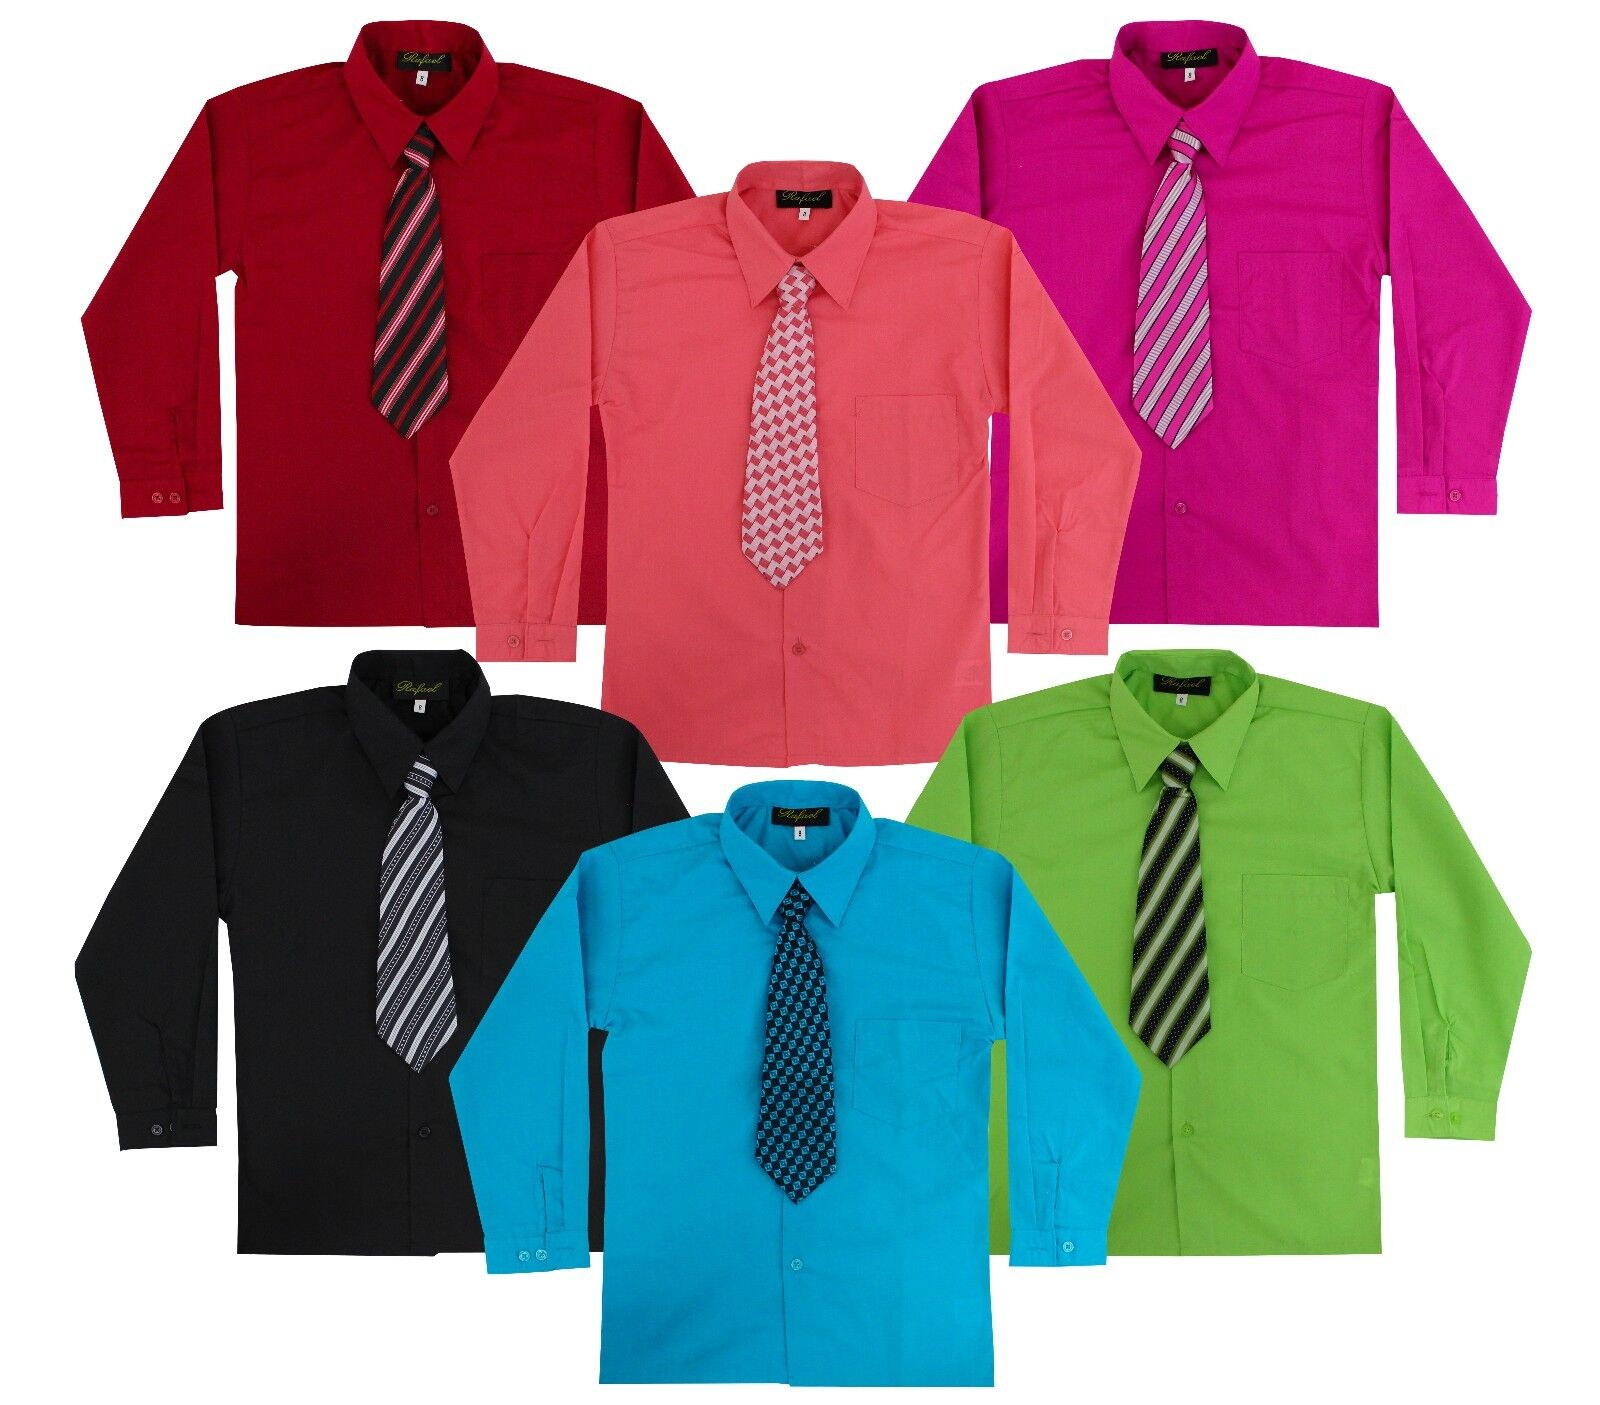 Kids Toddlers Boys Long Sleeve Dress Shirt with Tie Set Size